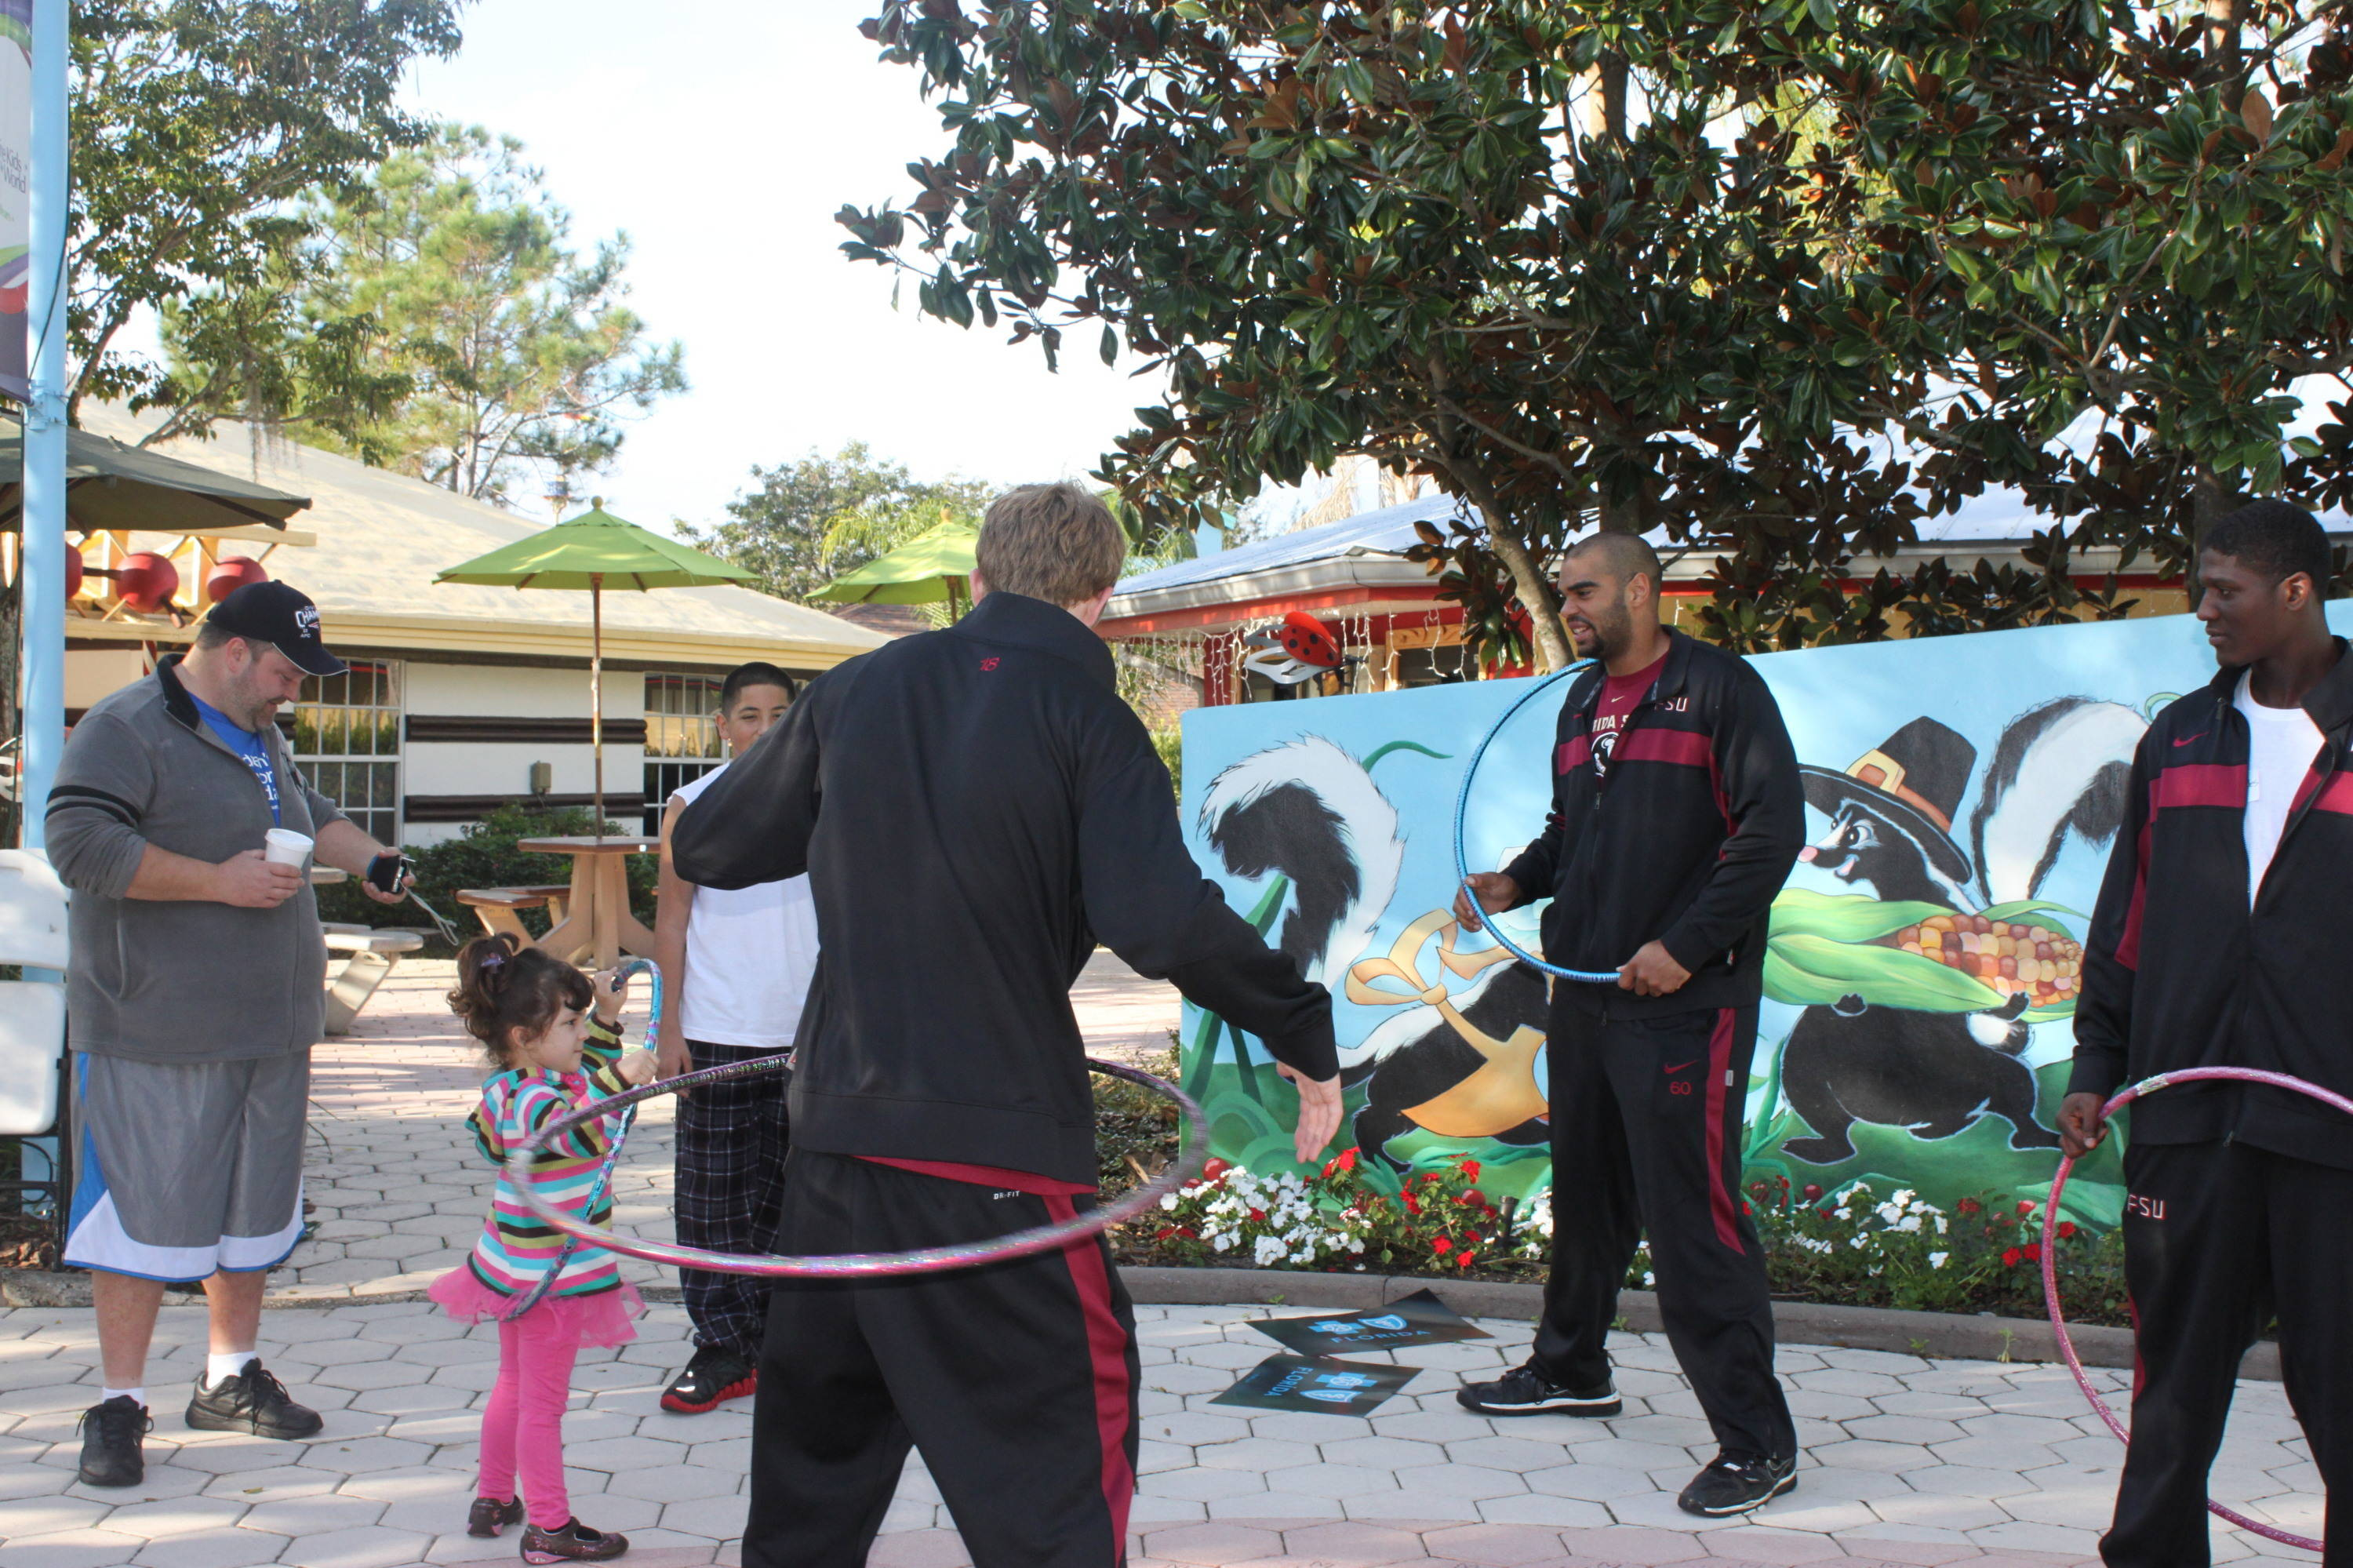 One young girl gets some pointers on the fine art of the Hoola Hoop from a group of 'Noles.